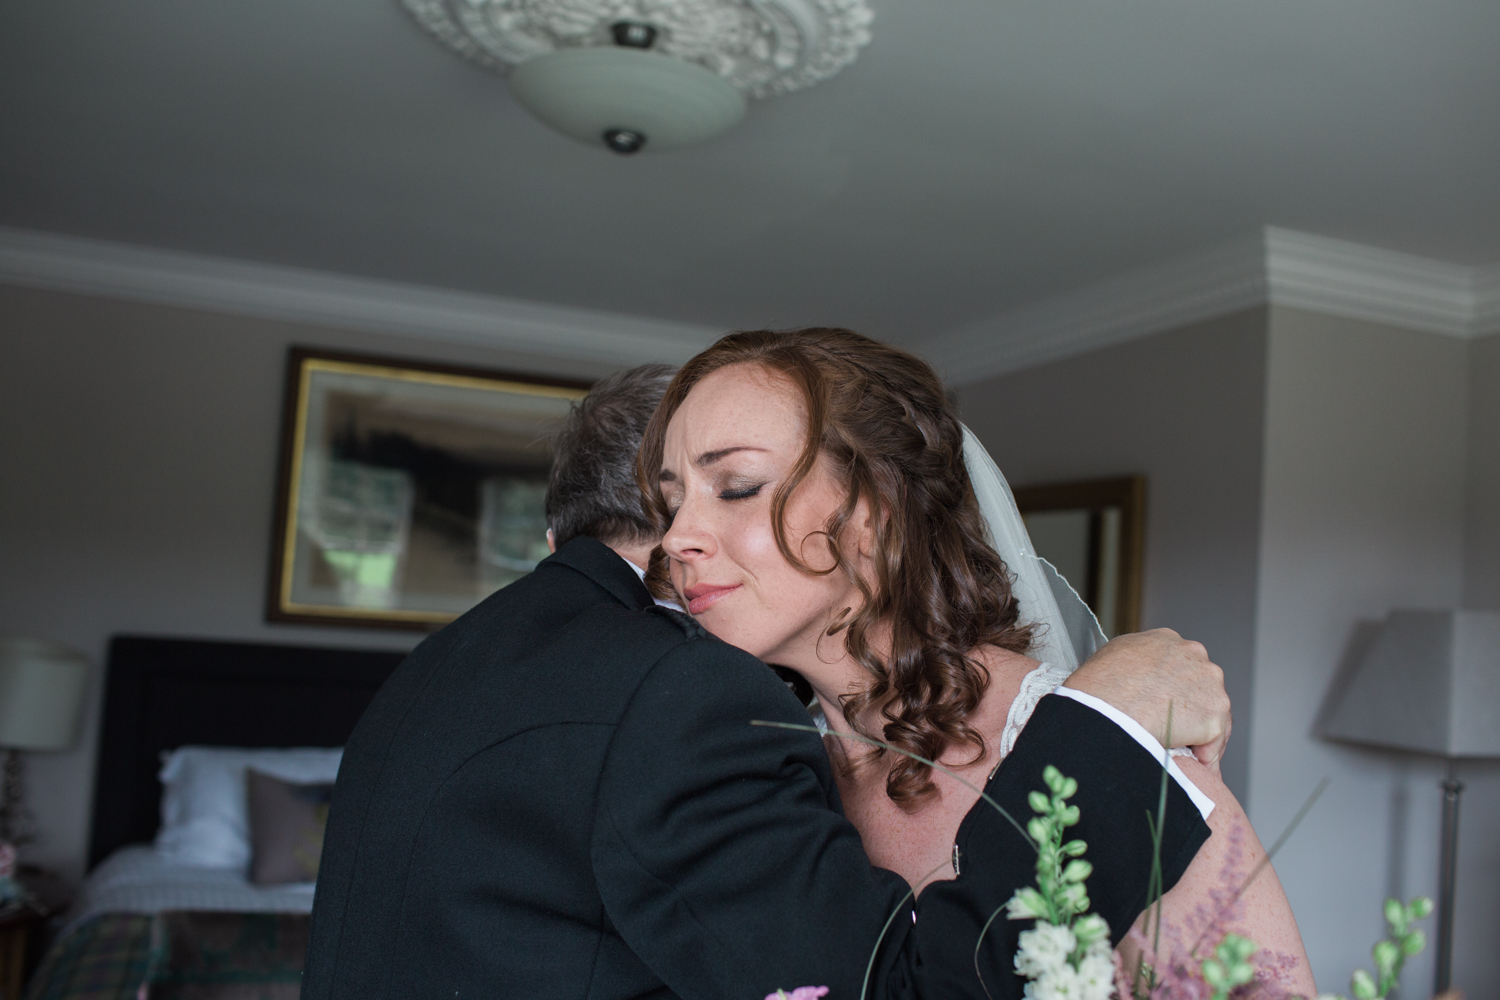 berdeen wedding photographer, Aberdeenshire wedding photography, Vivienne Elizabeth Photography, Banchory lodge, aberdeen wedding photographers, wedding photographers in aberdeen,